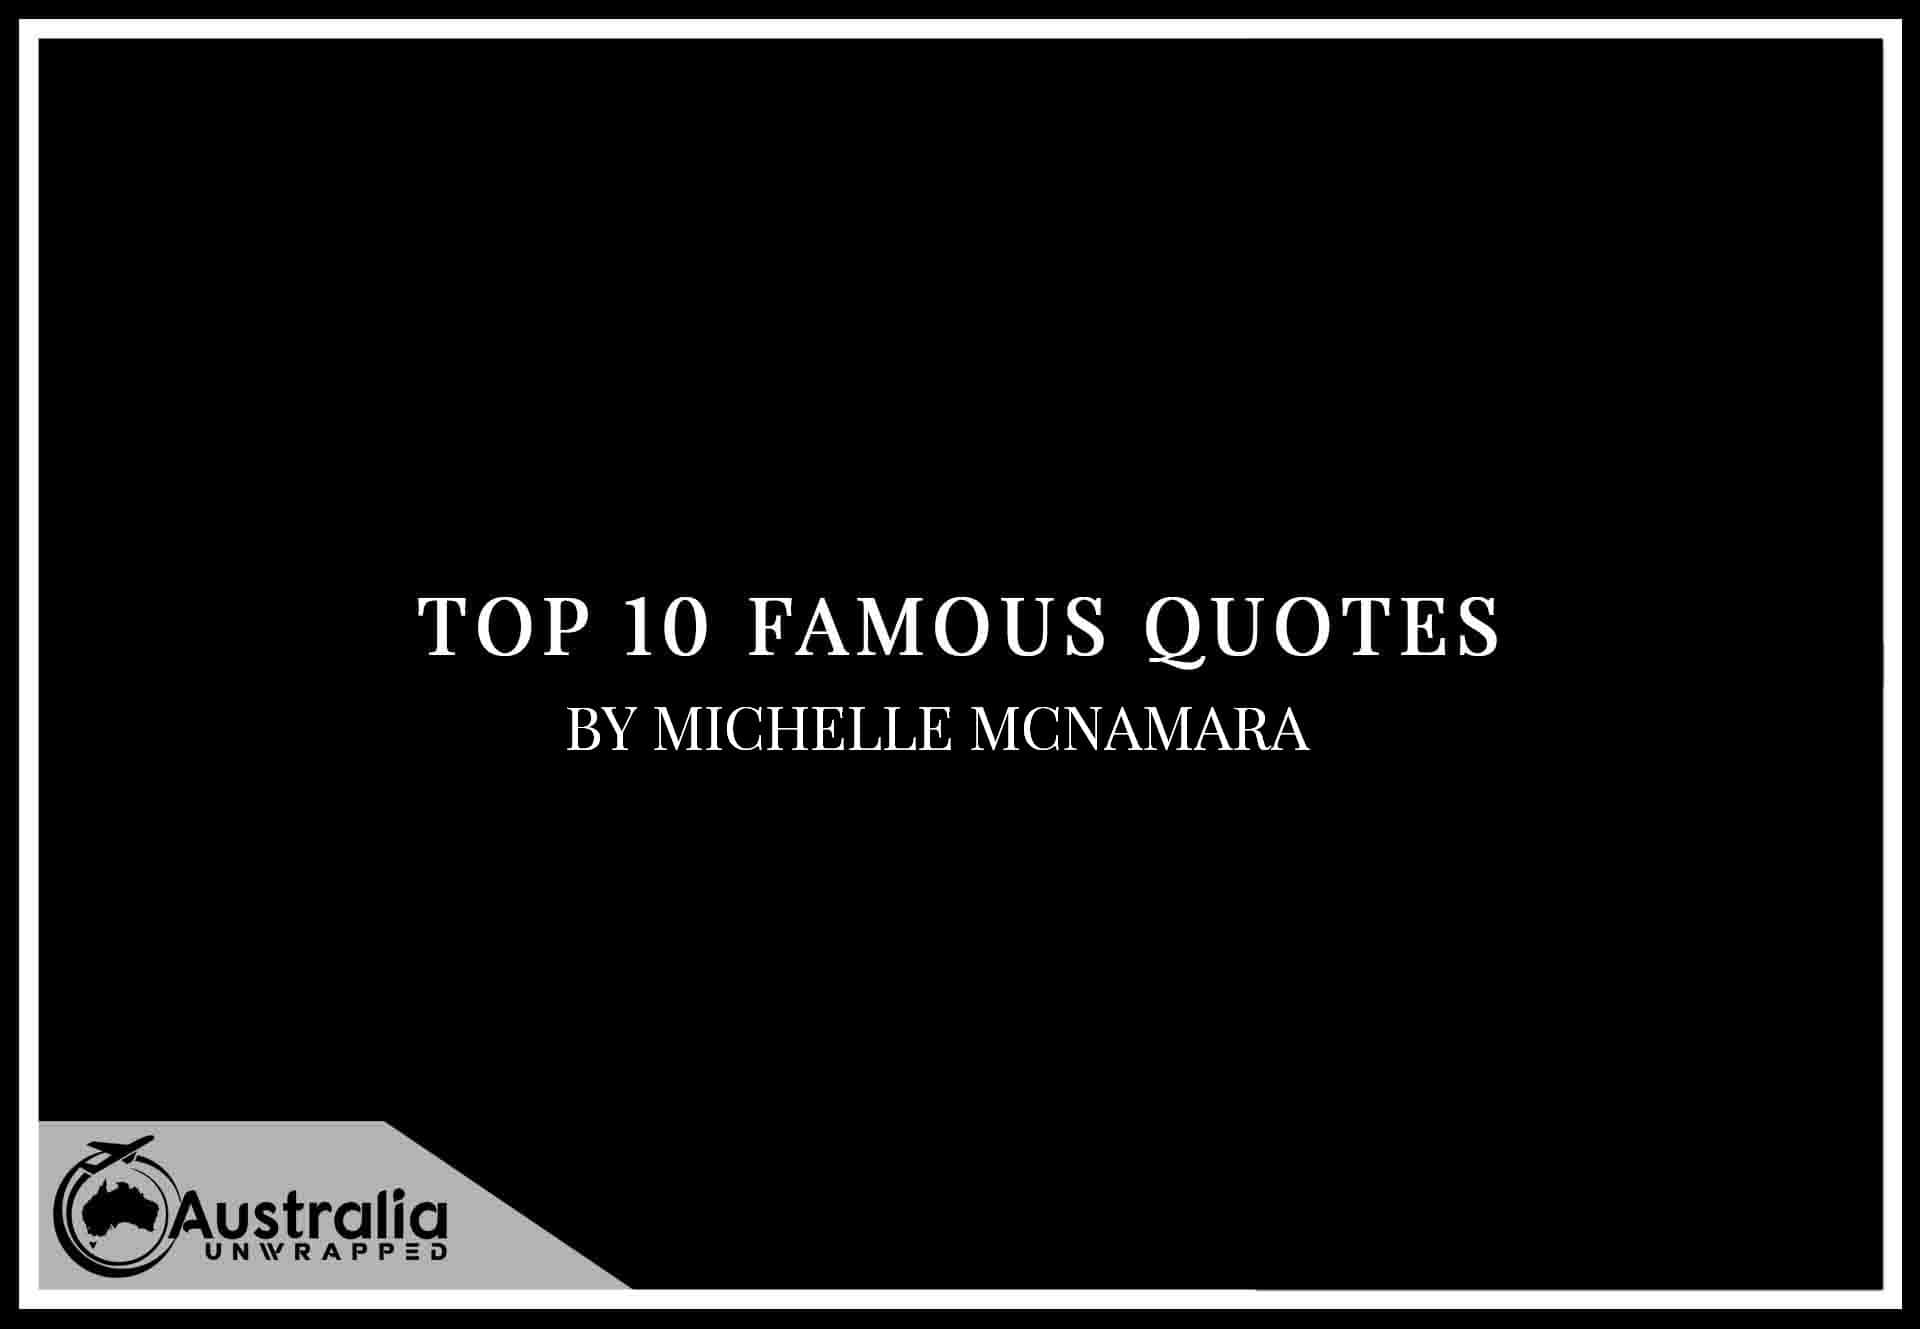 Top 10 Famous Quotes by Author Michelle McNamara